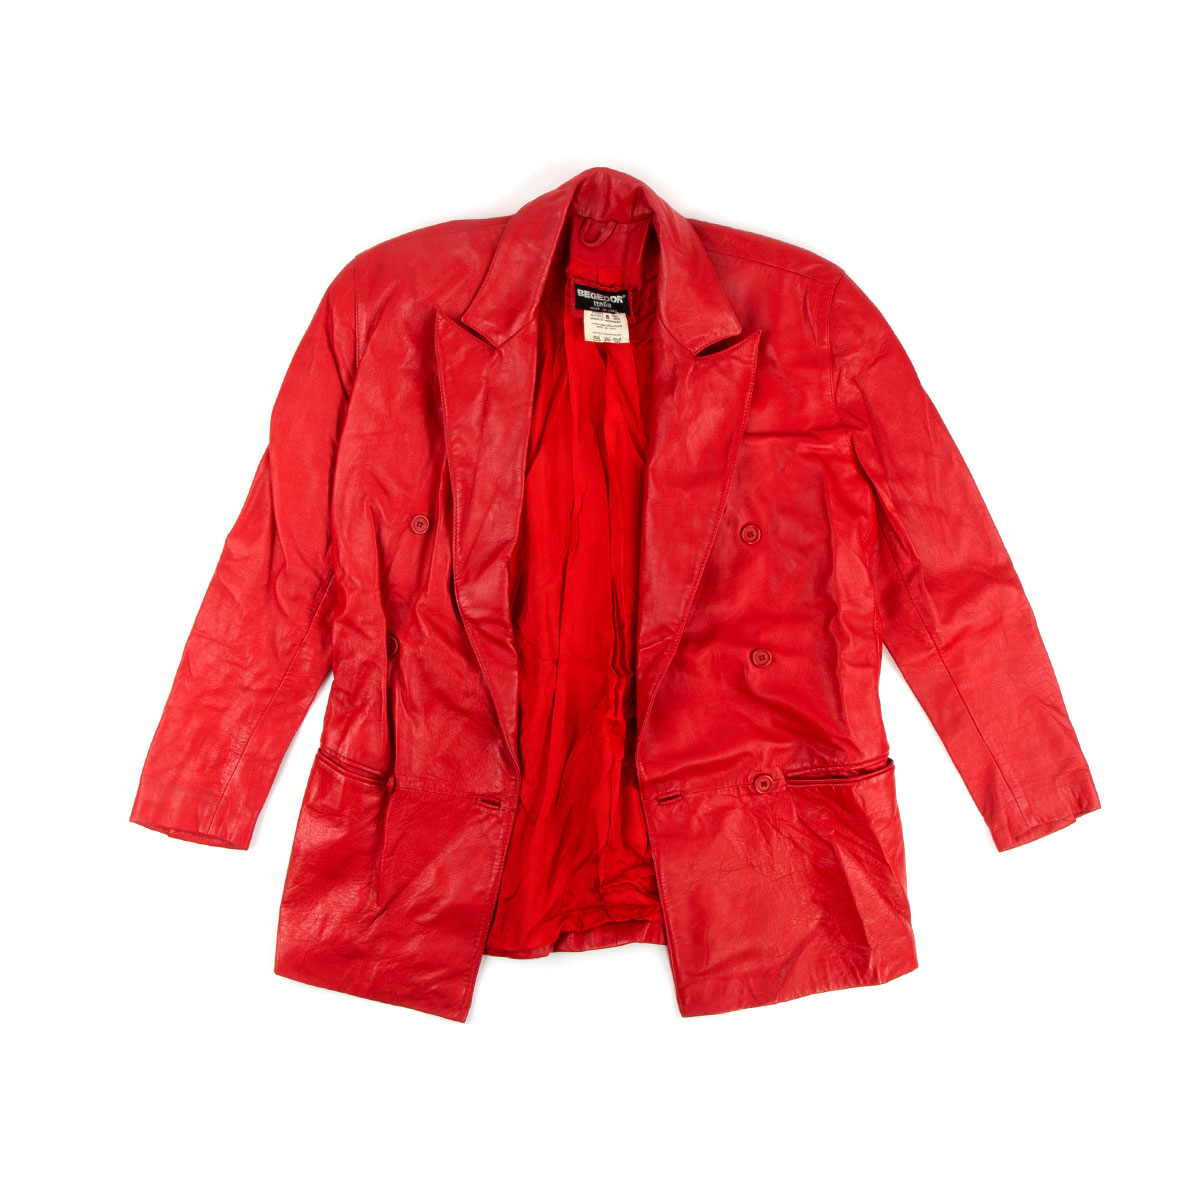 Red Leather Jacket (Size 6)